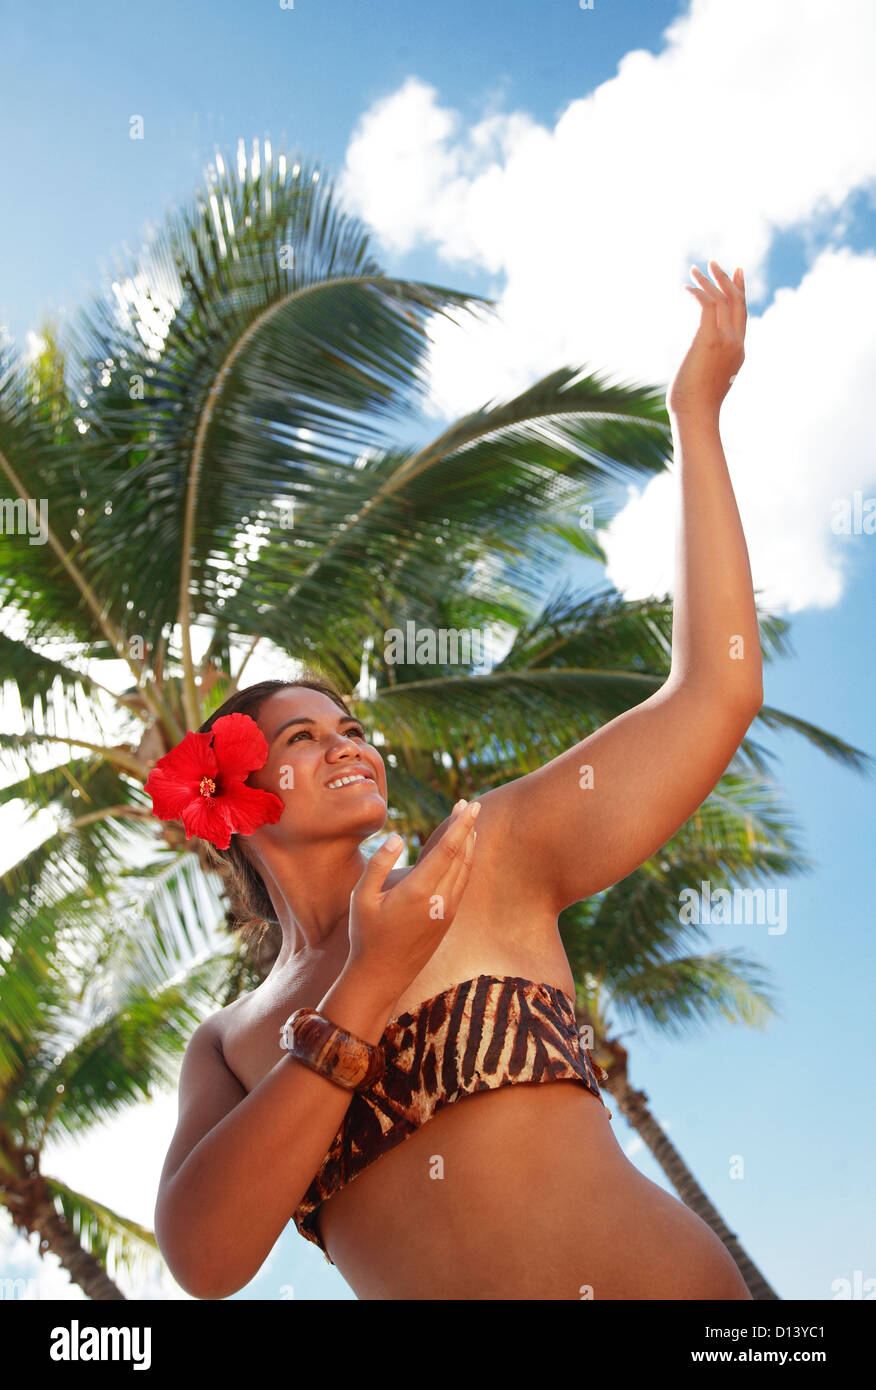 Hawaii, Oahu, Local Polynesian Hula Dancer Smiling And Dancing With Coconut Palm Trees In Background. - Stock Image